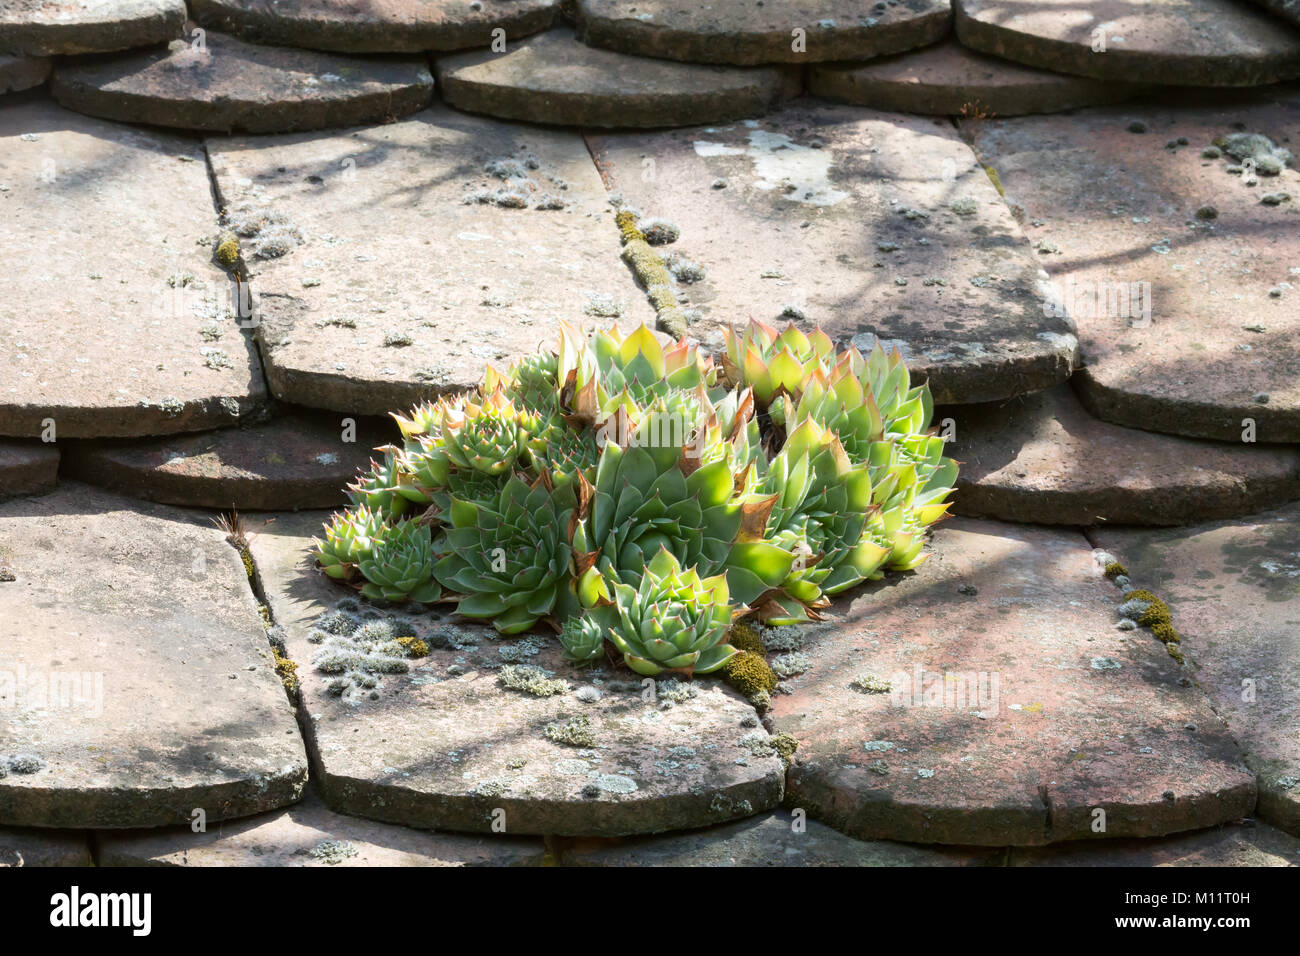 Stonecrop on tile - Stock Image